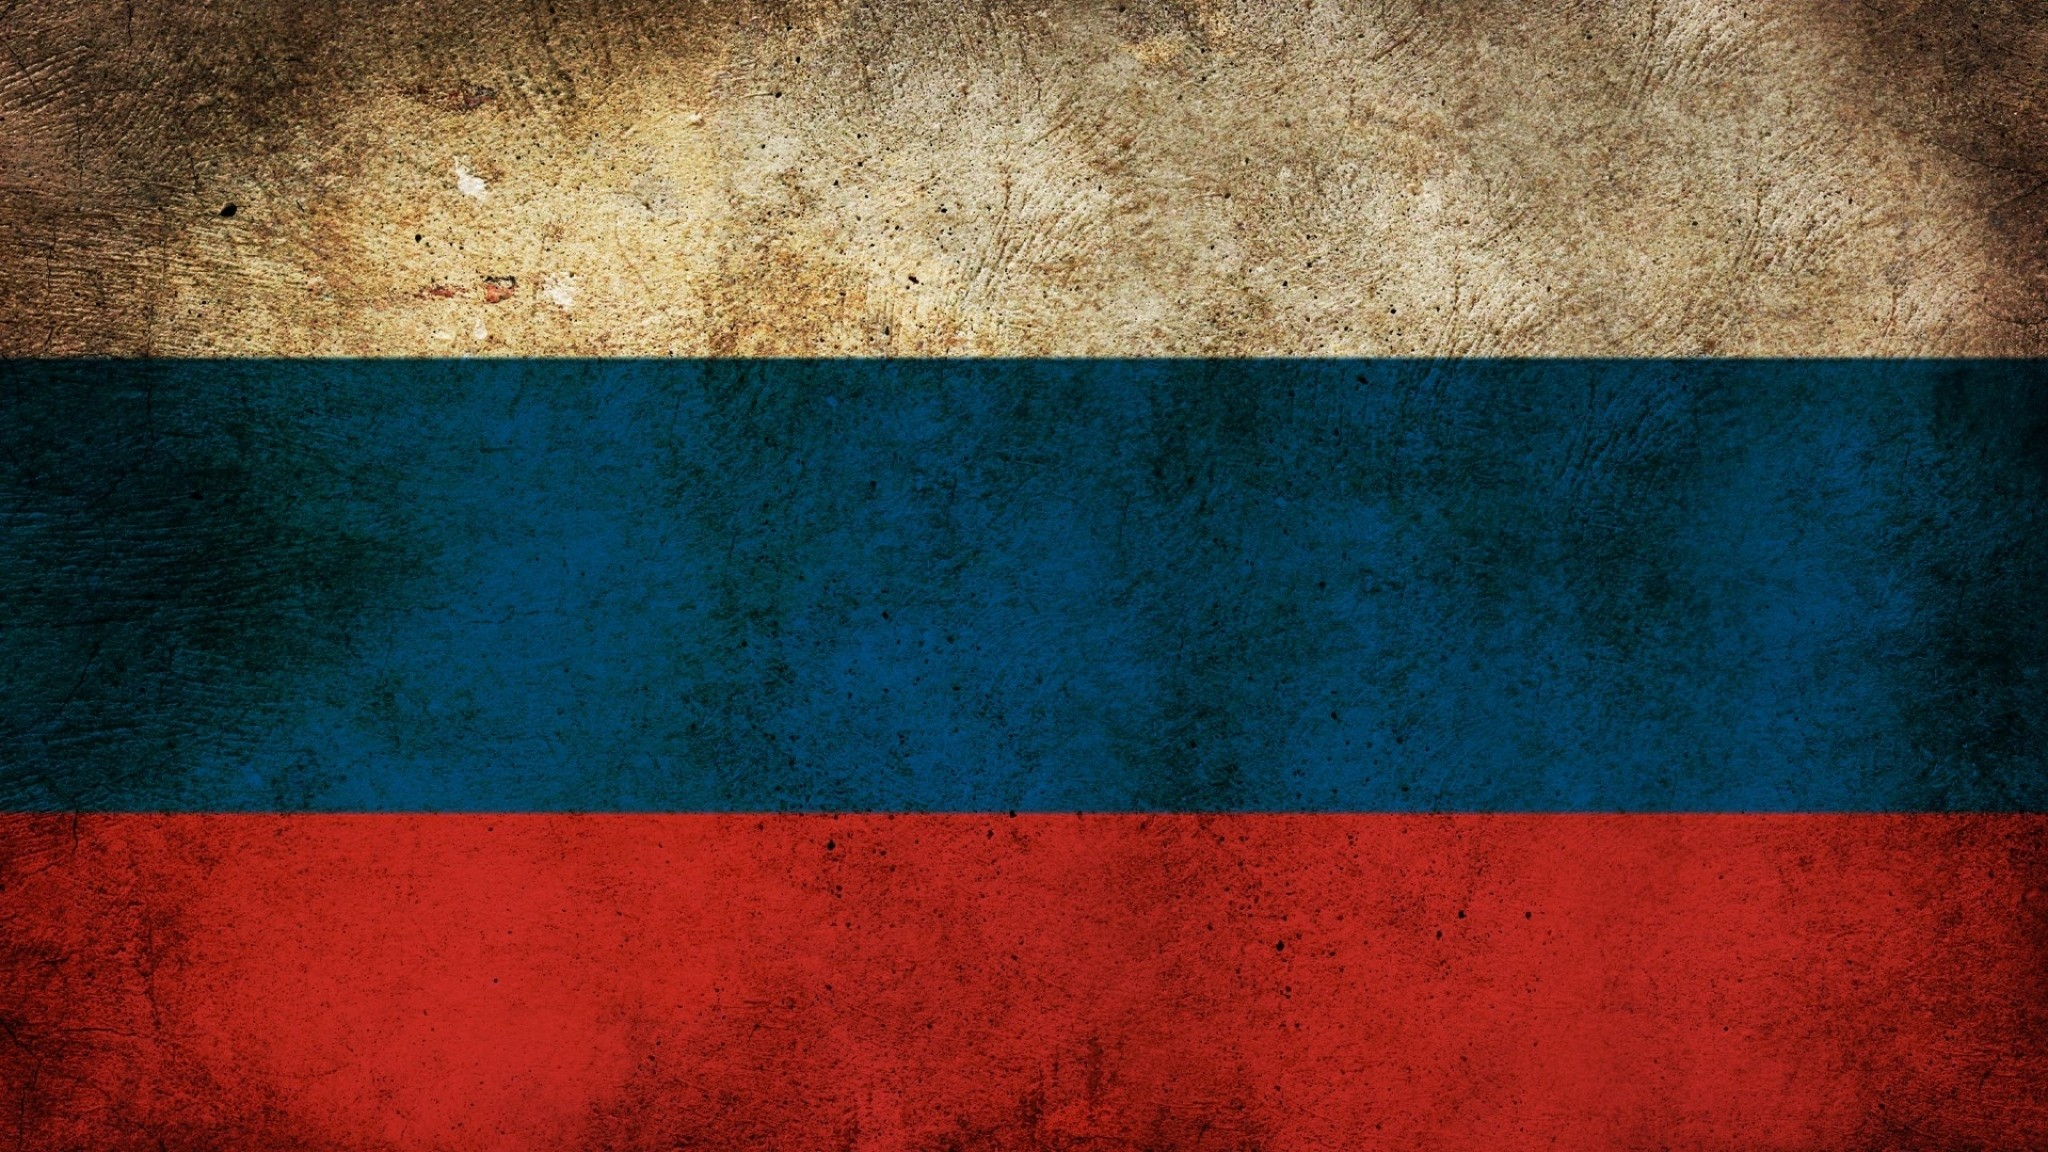 2048x1152 Preview wallpaper flag, texture, background, russia, symbolism